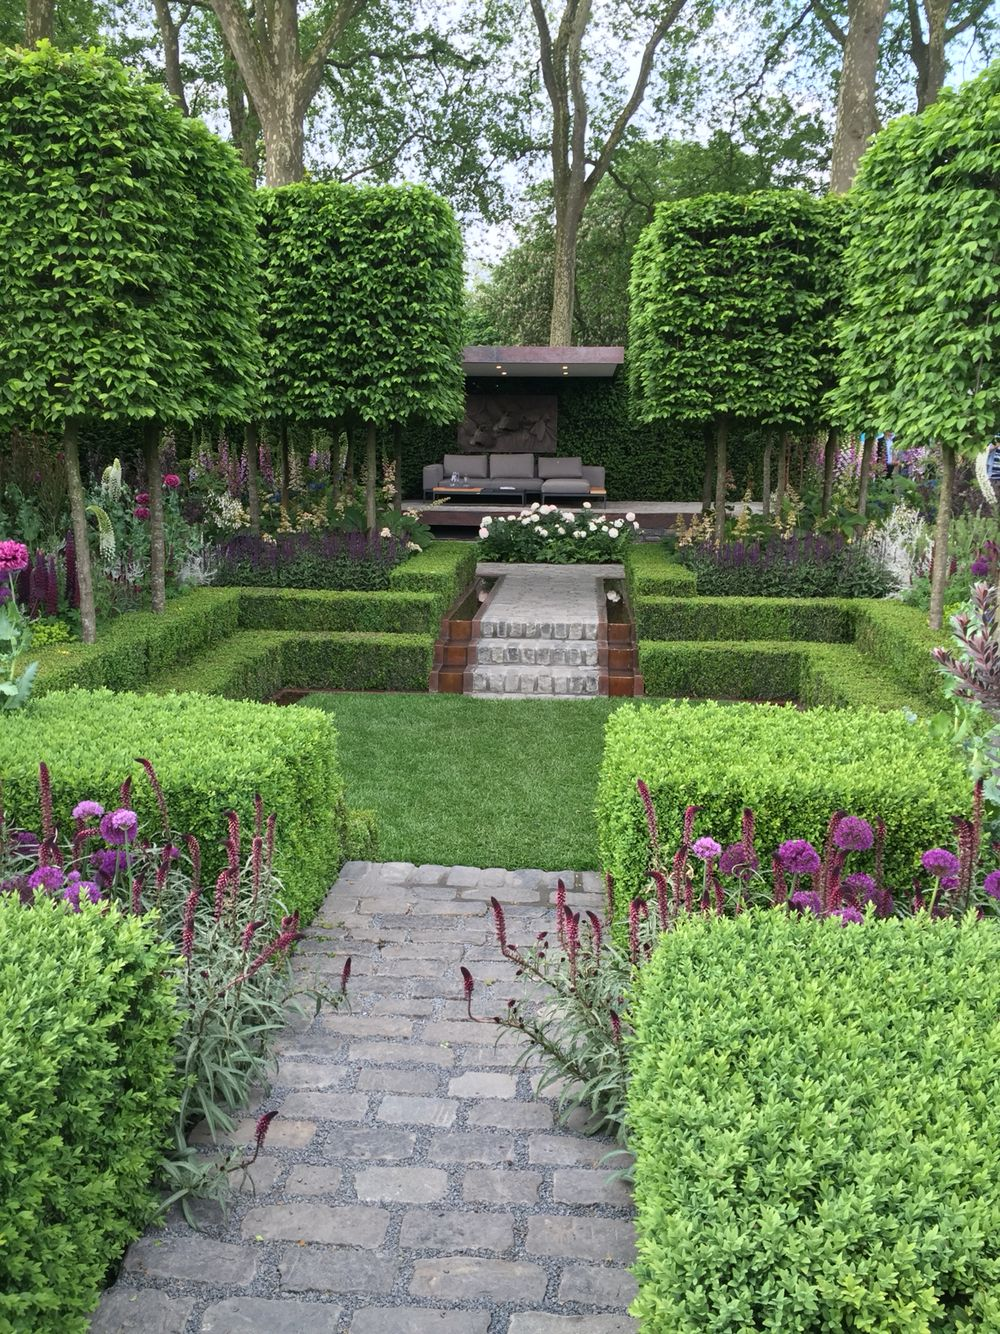 39 melbourne 39 garden chelsea flower show 2016 gardens for Kingsbury garden designs